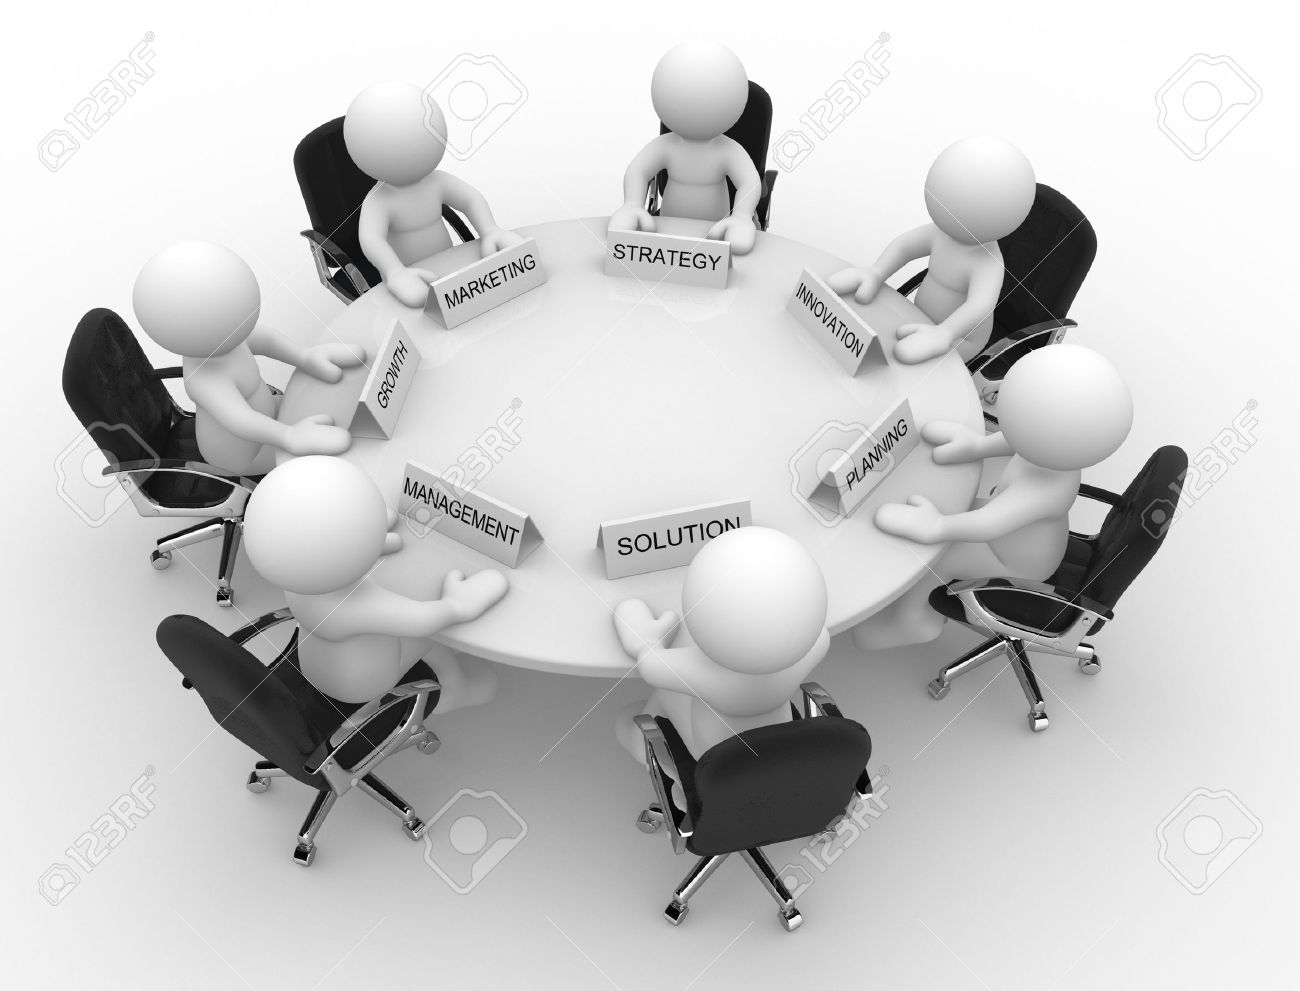 Round table meeting icon - Management Board Meeting 3d People Men Person To Conference Table Meeting